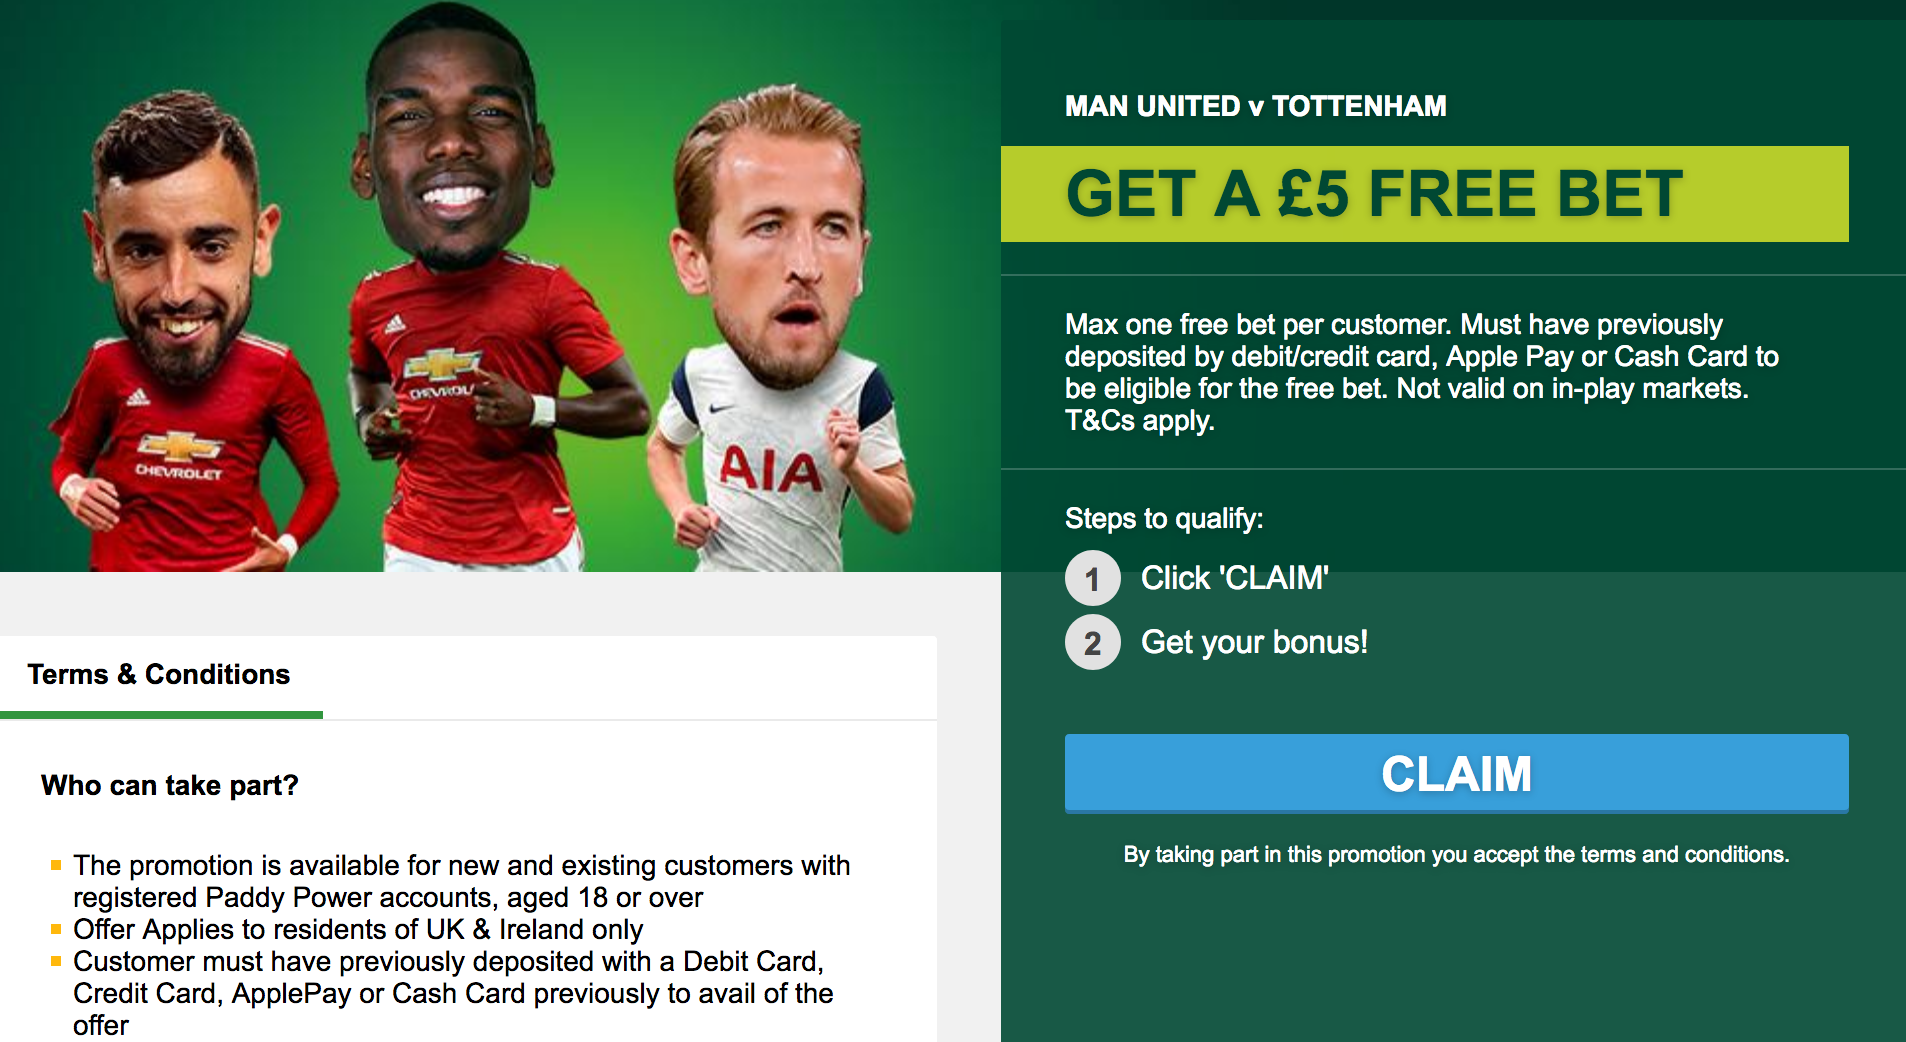 free bet offers from Paddy Power for existing customers